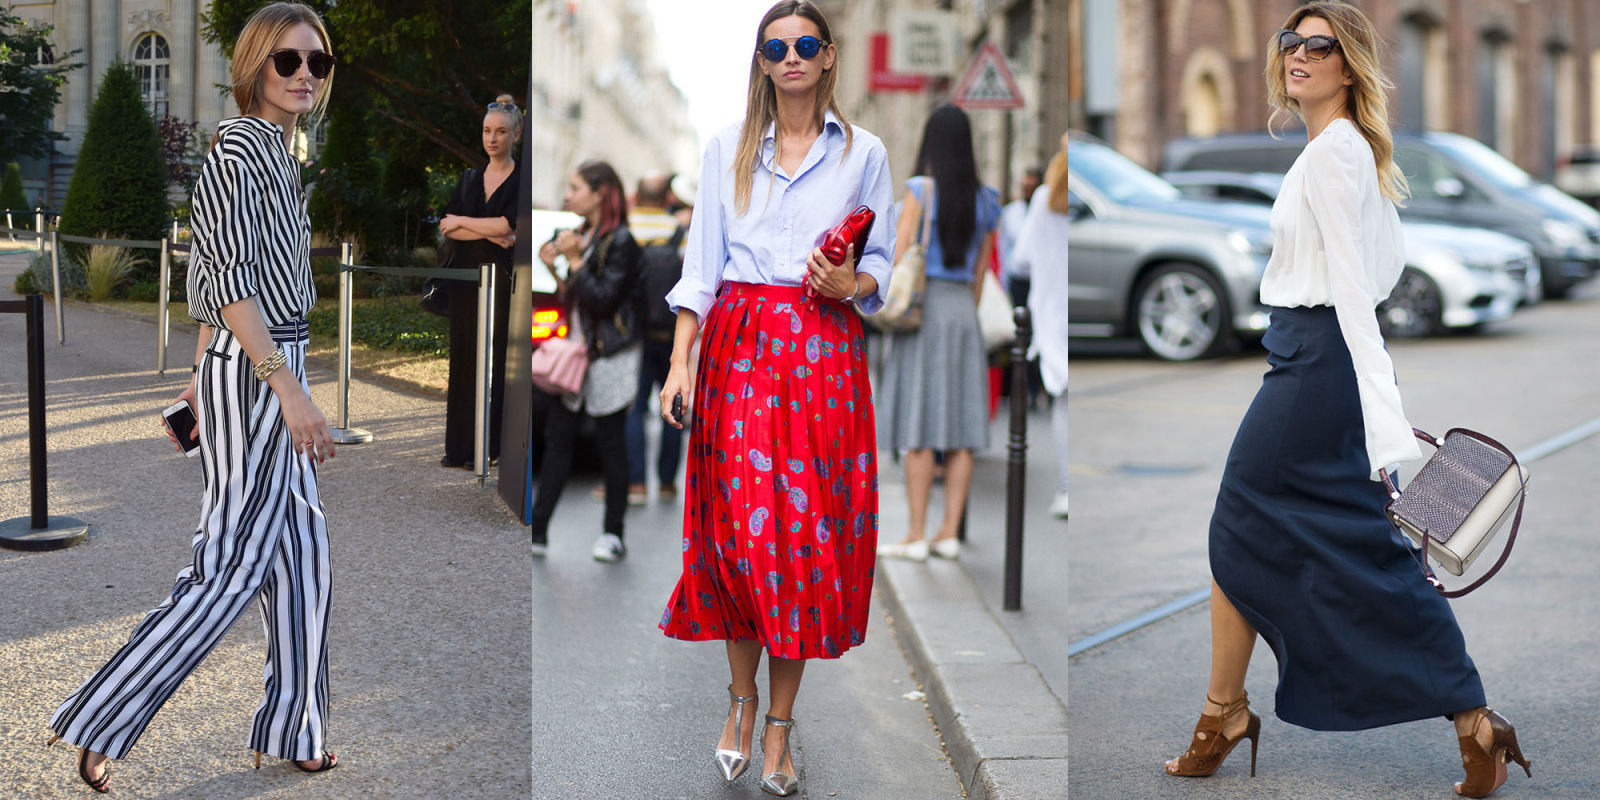 15 summer workwear outfit ideas what to wear to the office during summer chic office ideas 15 chic